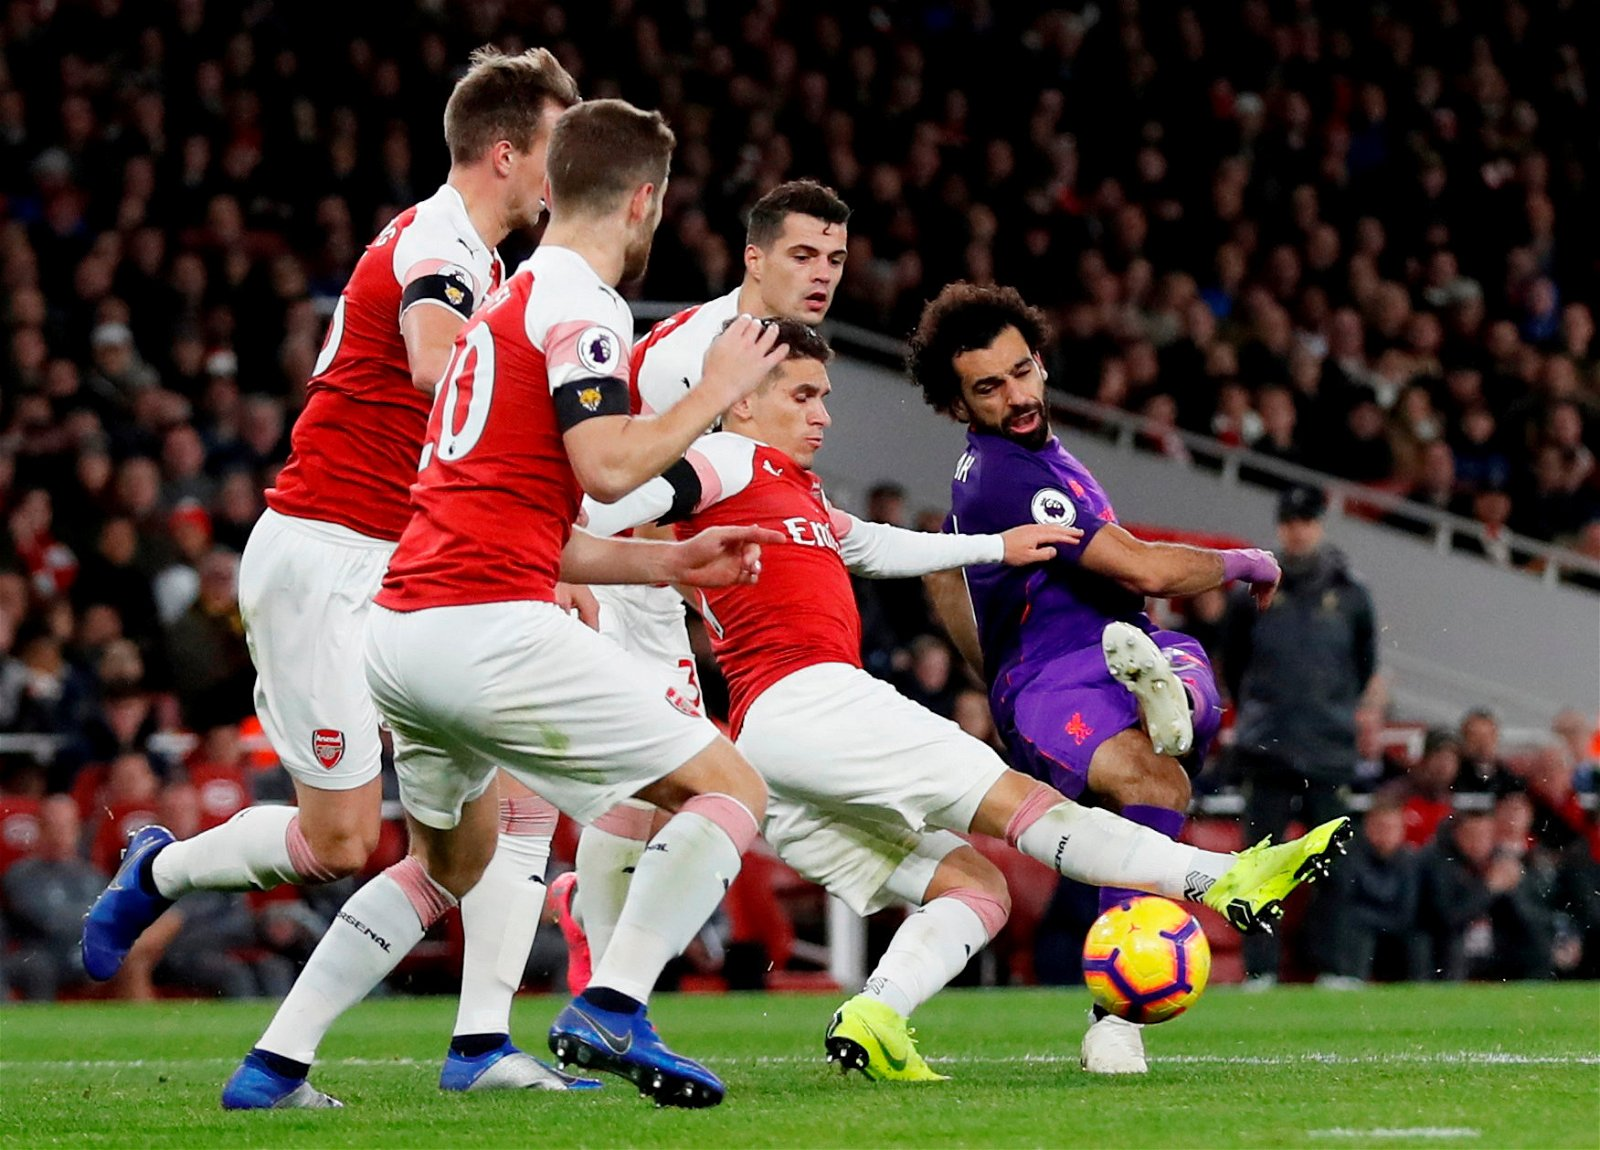 Liverpool's Mohamed Salah closed down by Arsenal's Granit Xhaka, Lucas Torreira, Rob Holding and Shkodran Mustafi